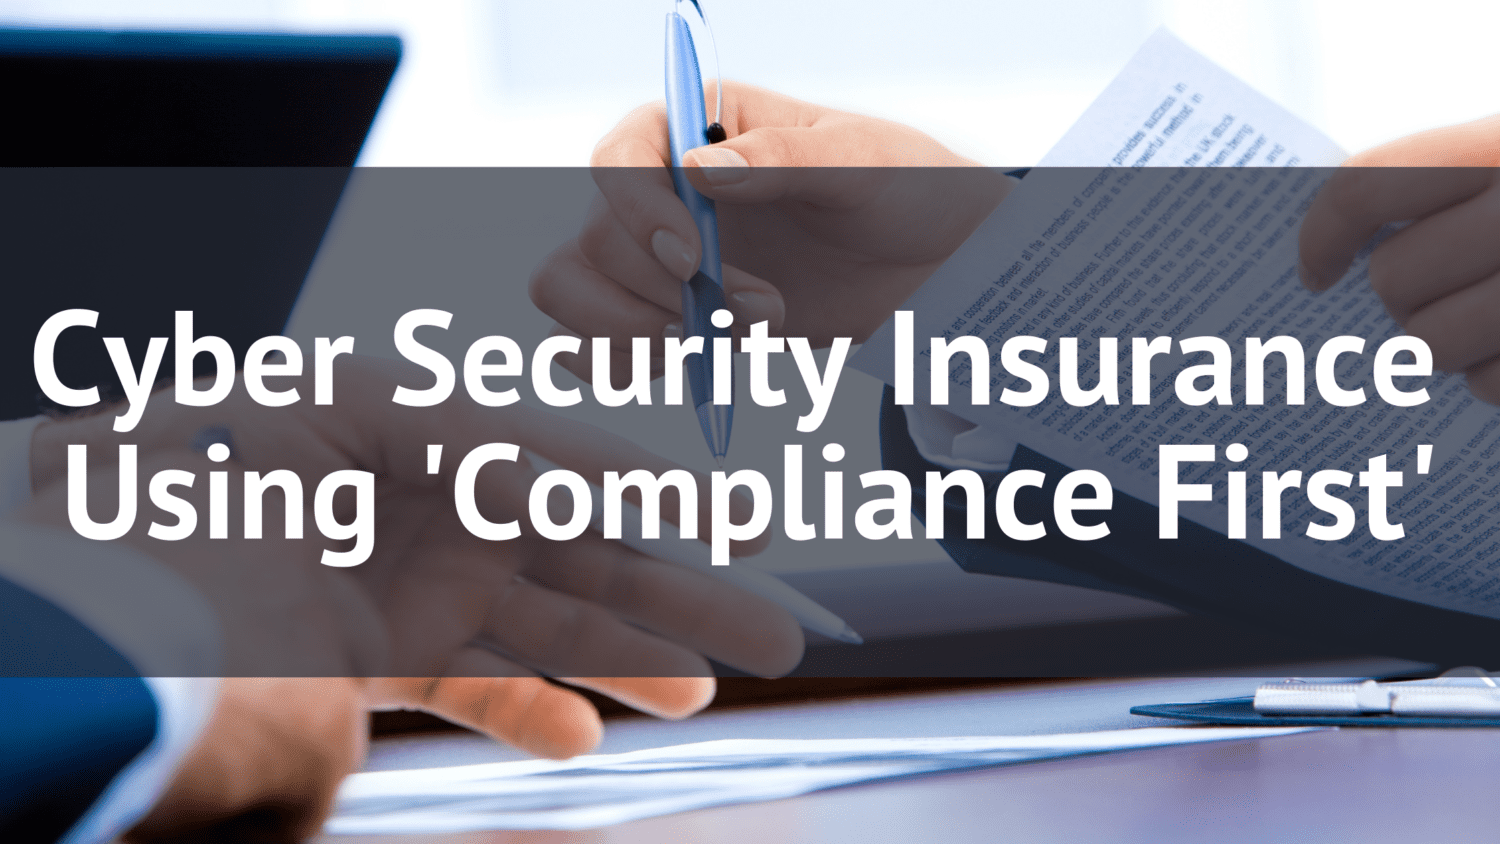 Cyber Security Insurance Using 'Compliance First'